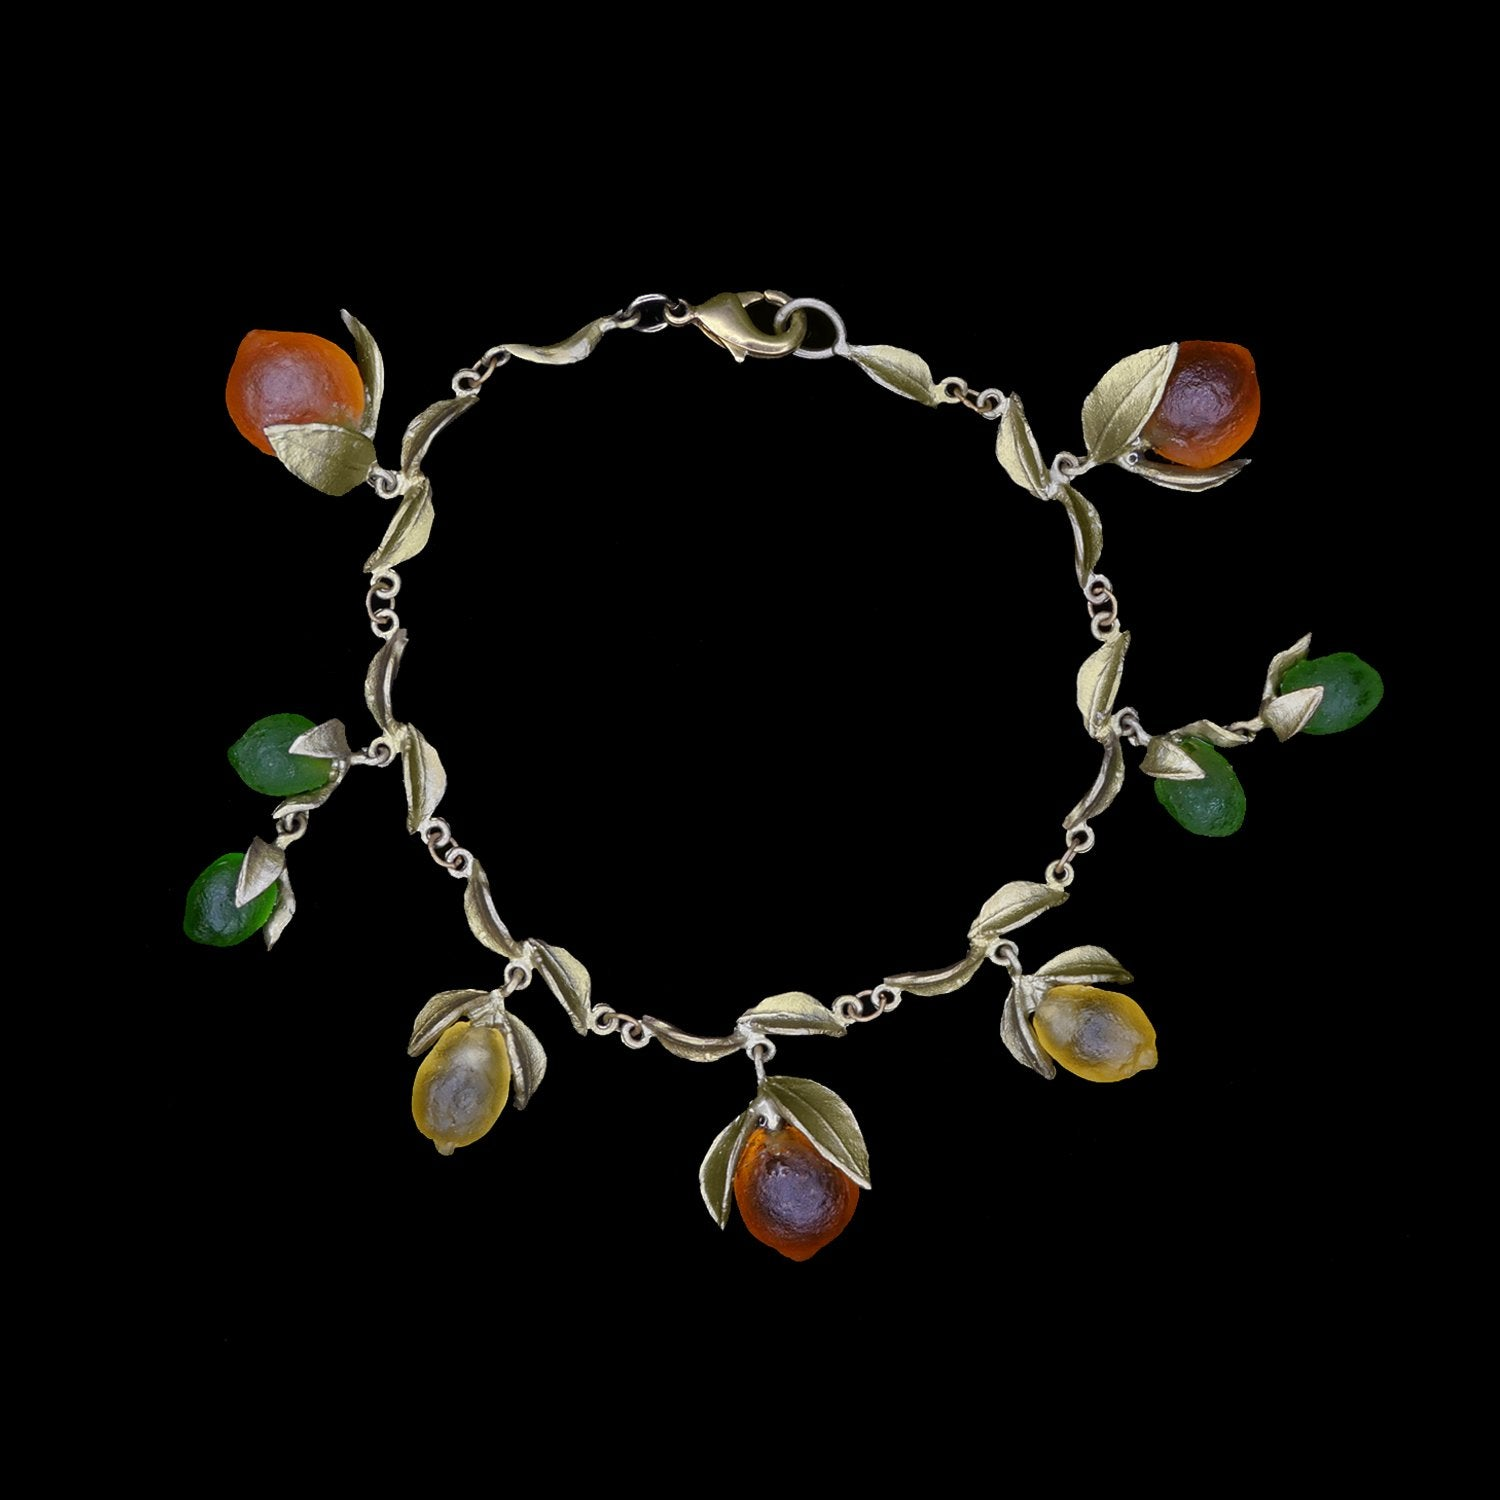 Citrus Fruit Bracelet